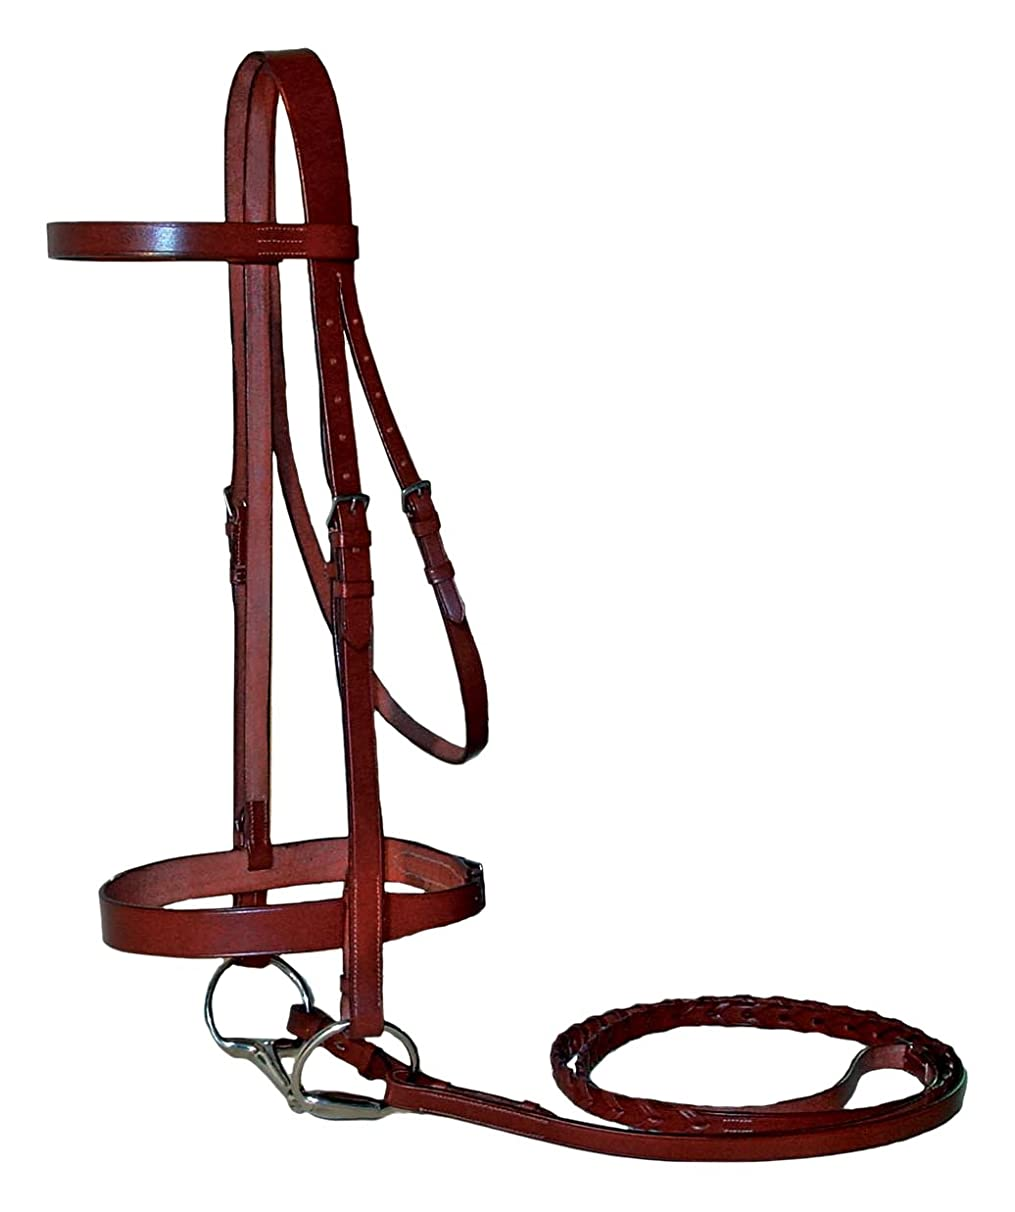 Paris Tack Heavy Duty English Hunt Bridle with 3/4